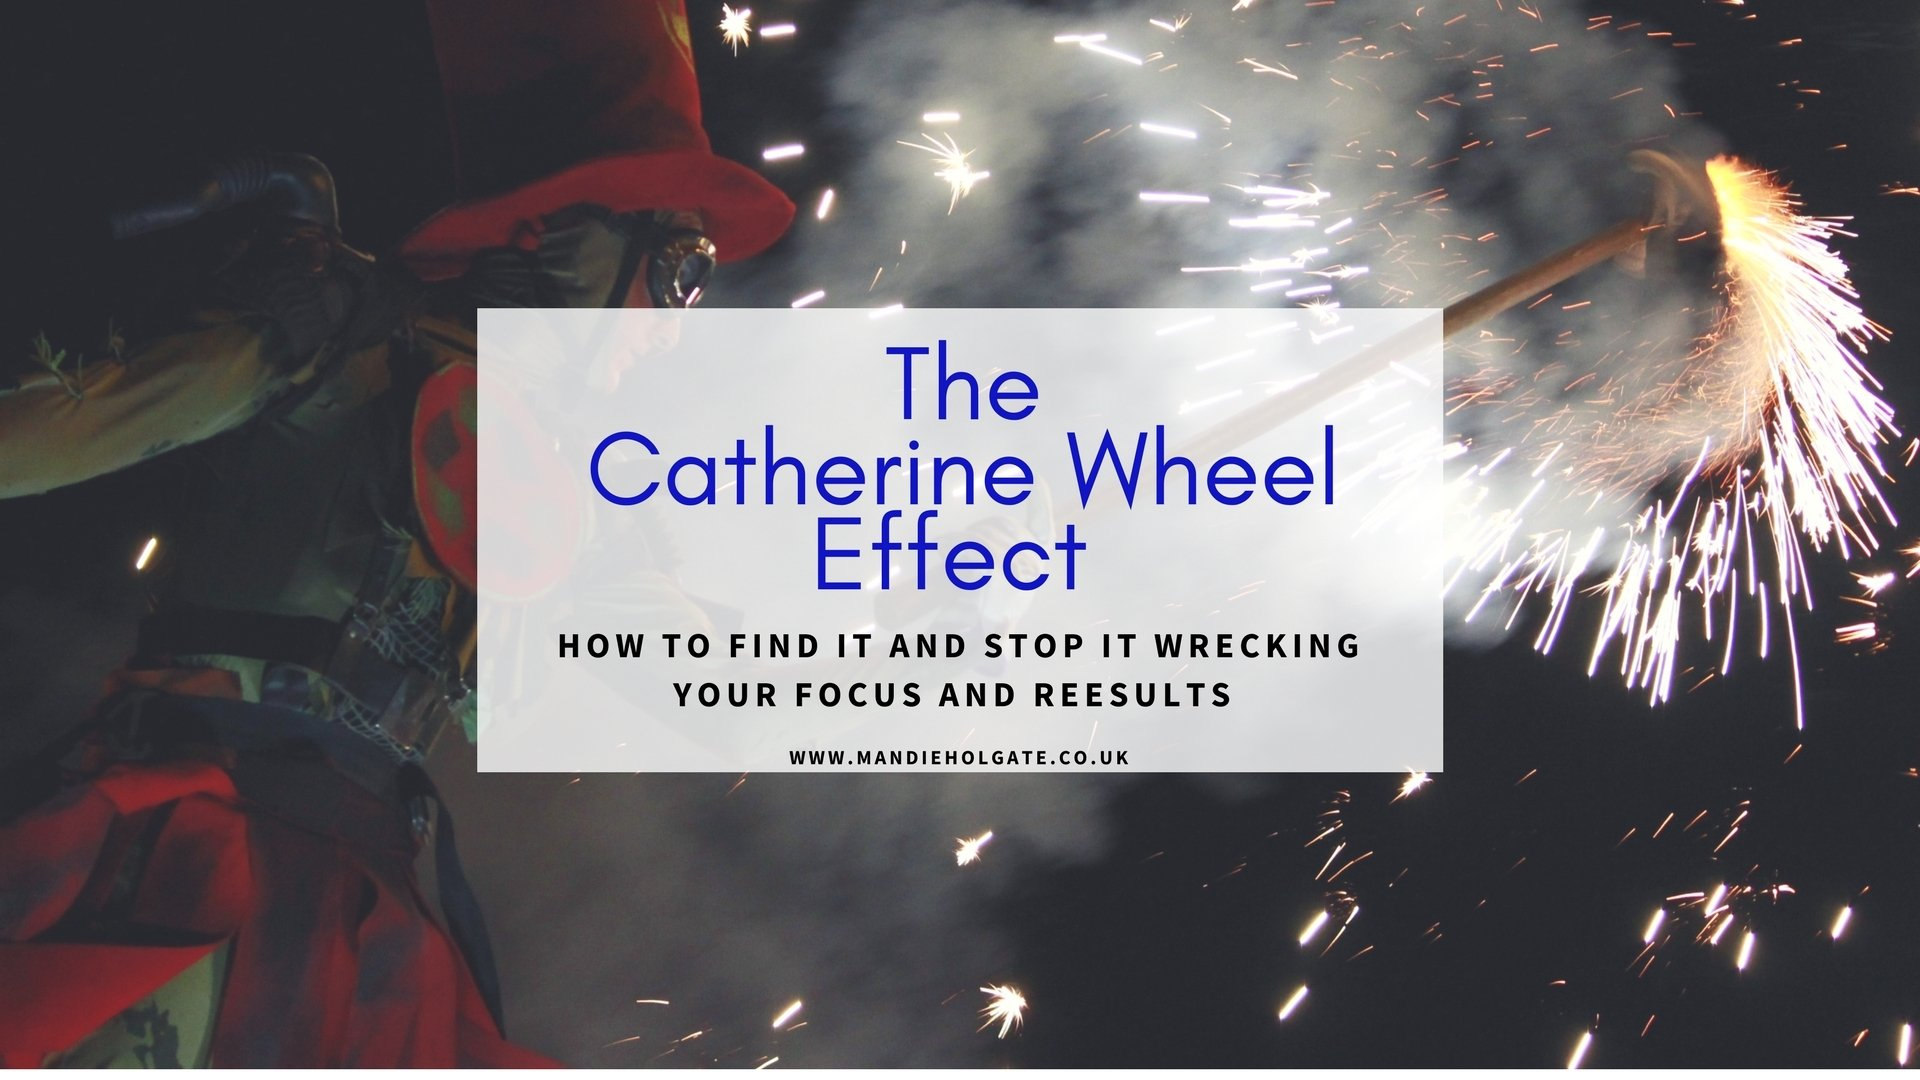 The Catherine Wheel Effect Mandie Holgate focus